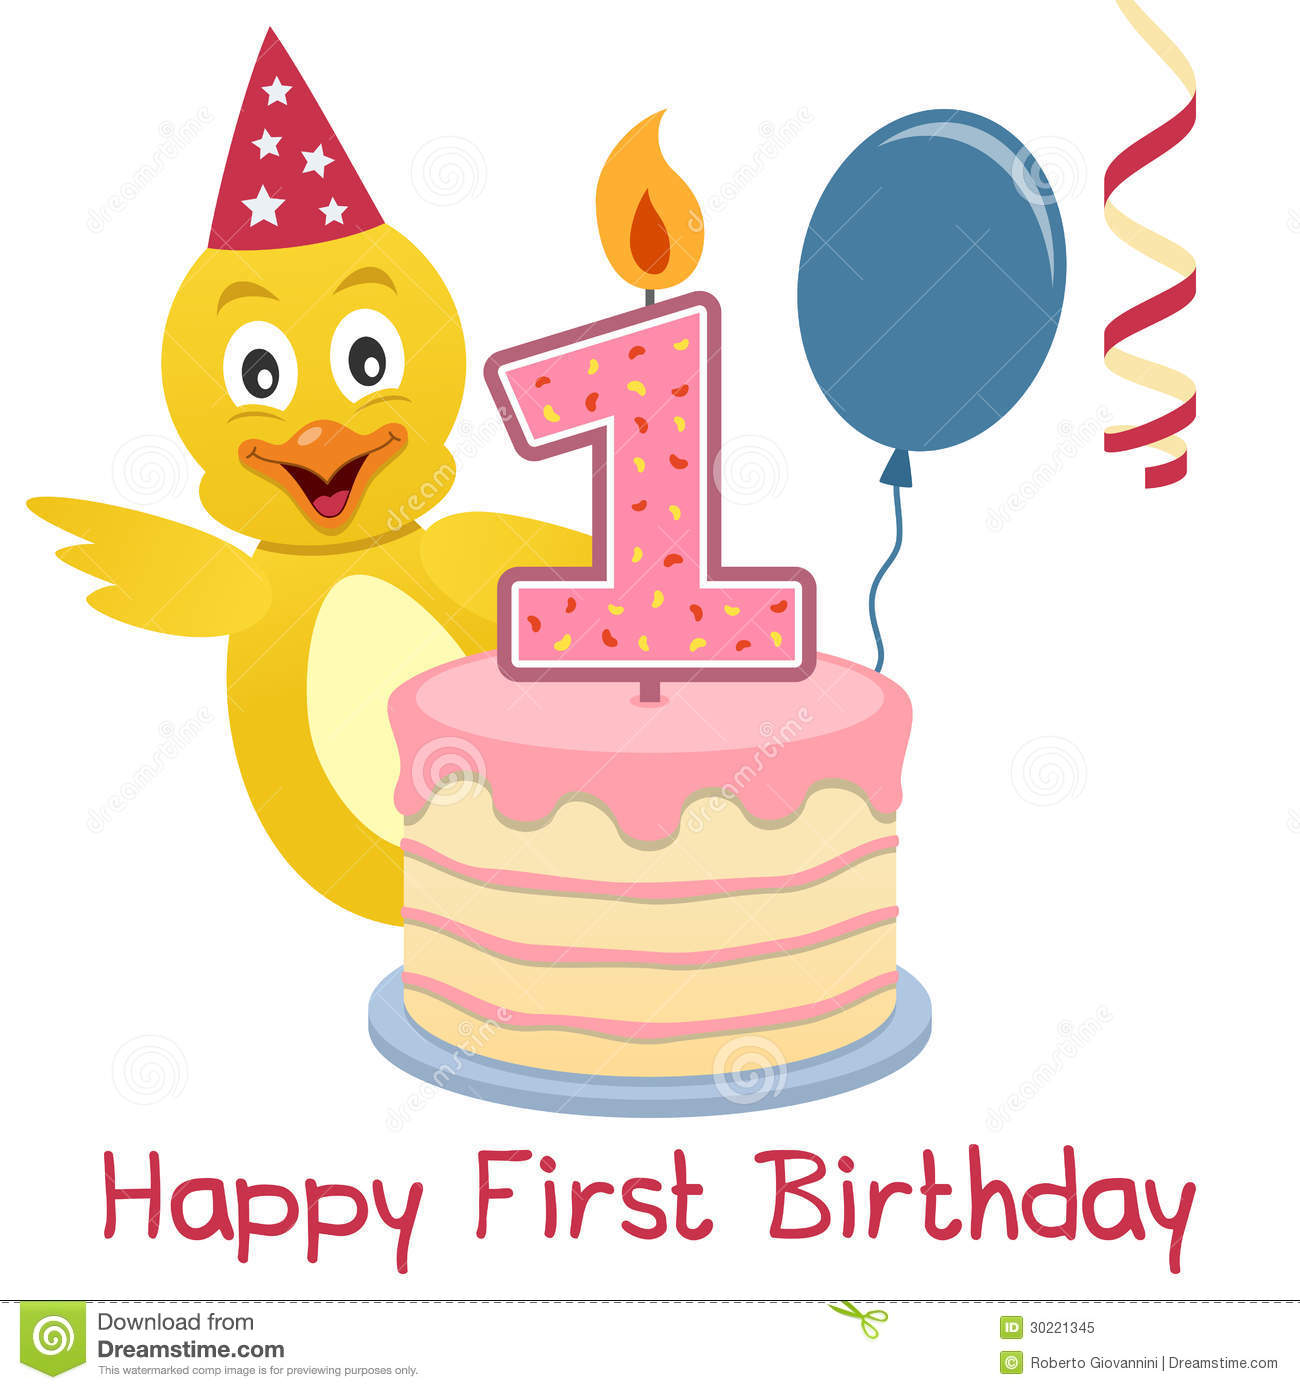 first birthday wishes greeting cards ; happy-first-birthday-greeting-card-funny-cute-chick-birthday-cake-numbered-candle-red-balloon-blue-streamer-30221345